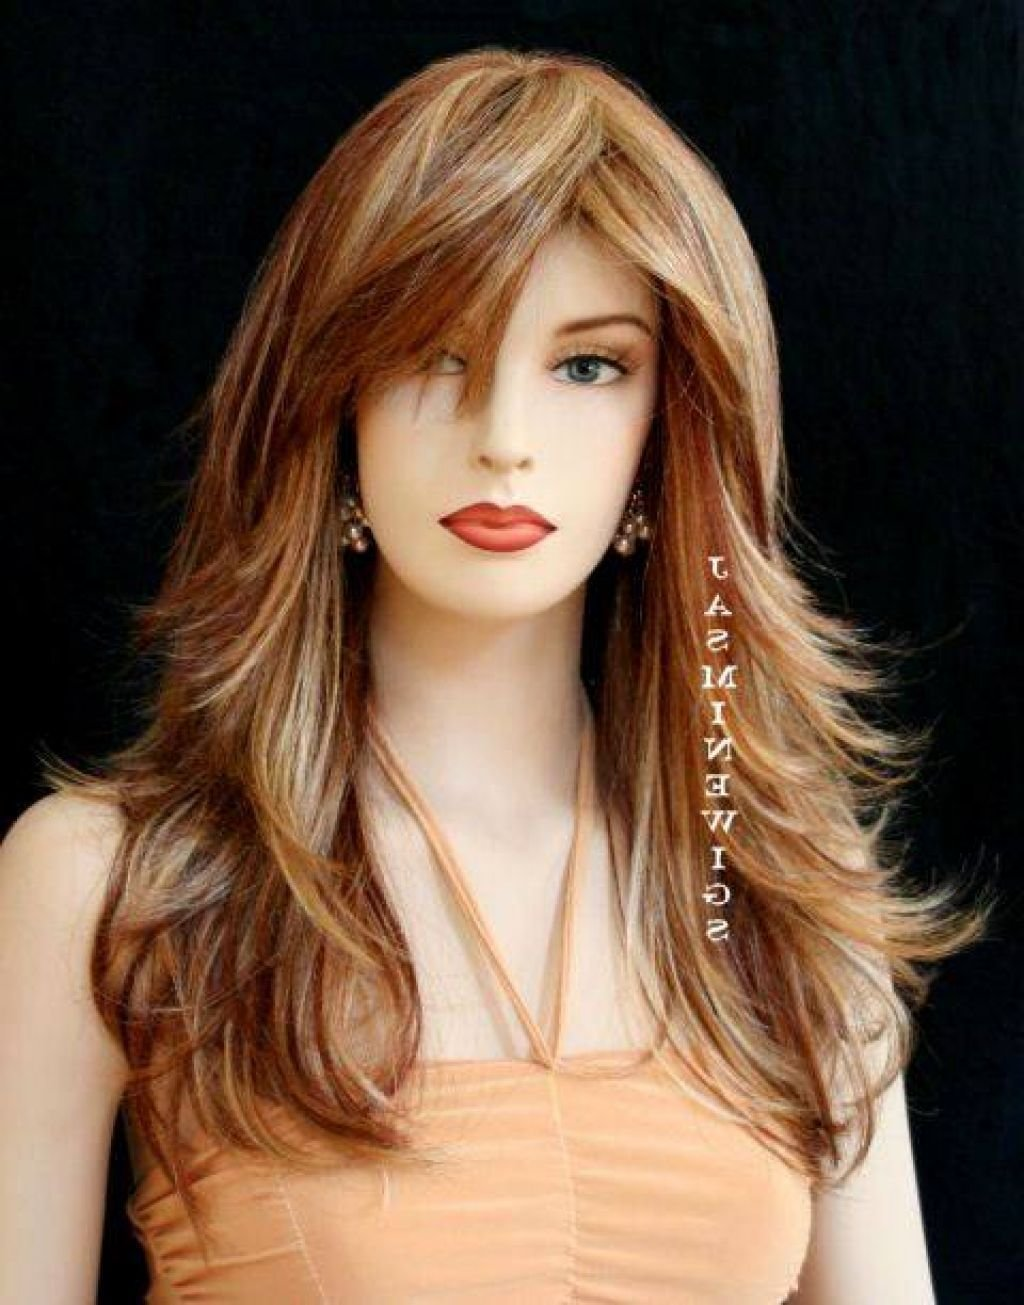 The Best Stunning And Cute Hairstyles For Long Hair 527 Diva Pictures